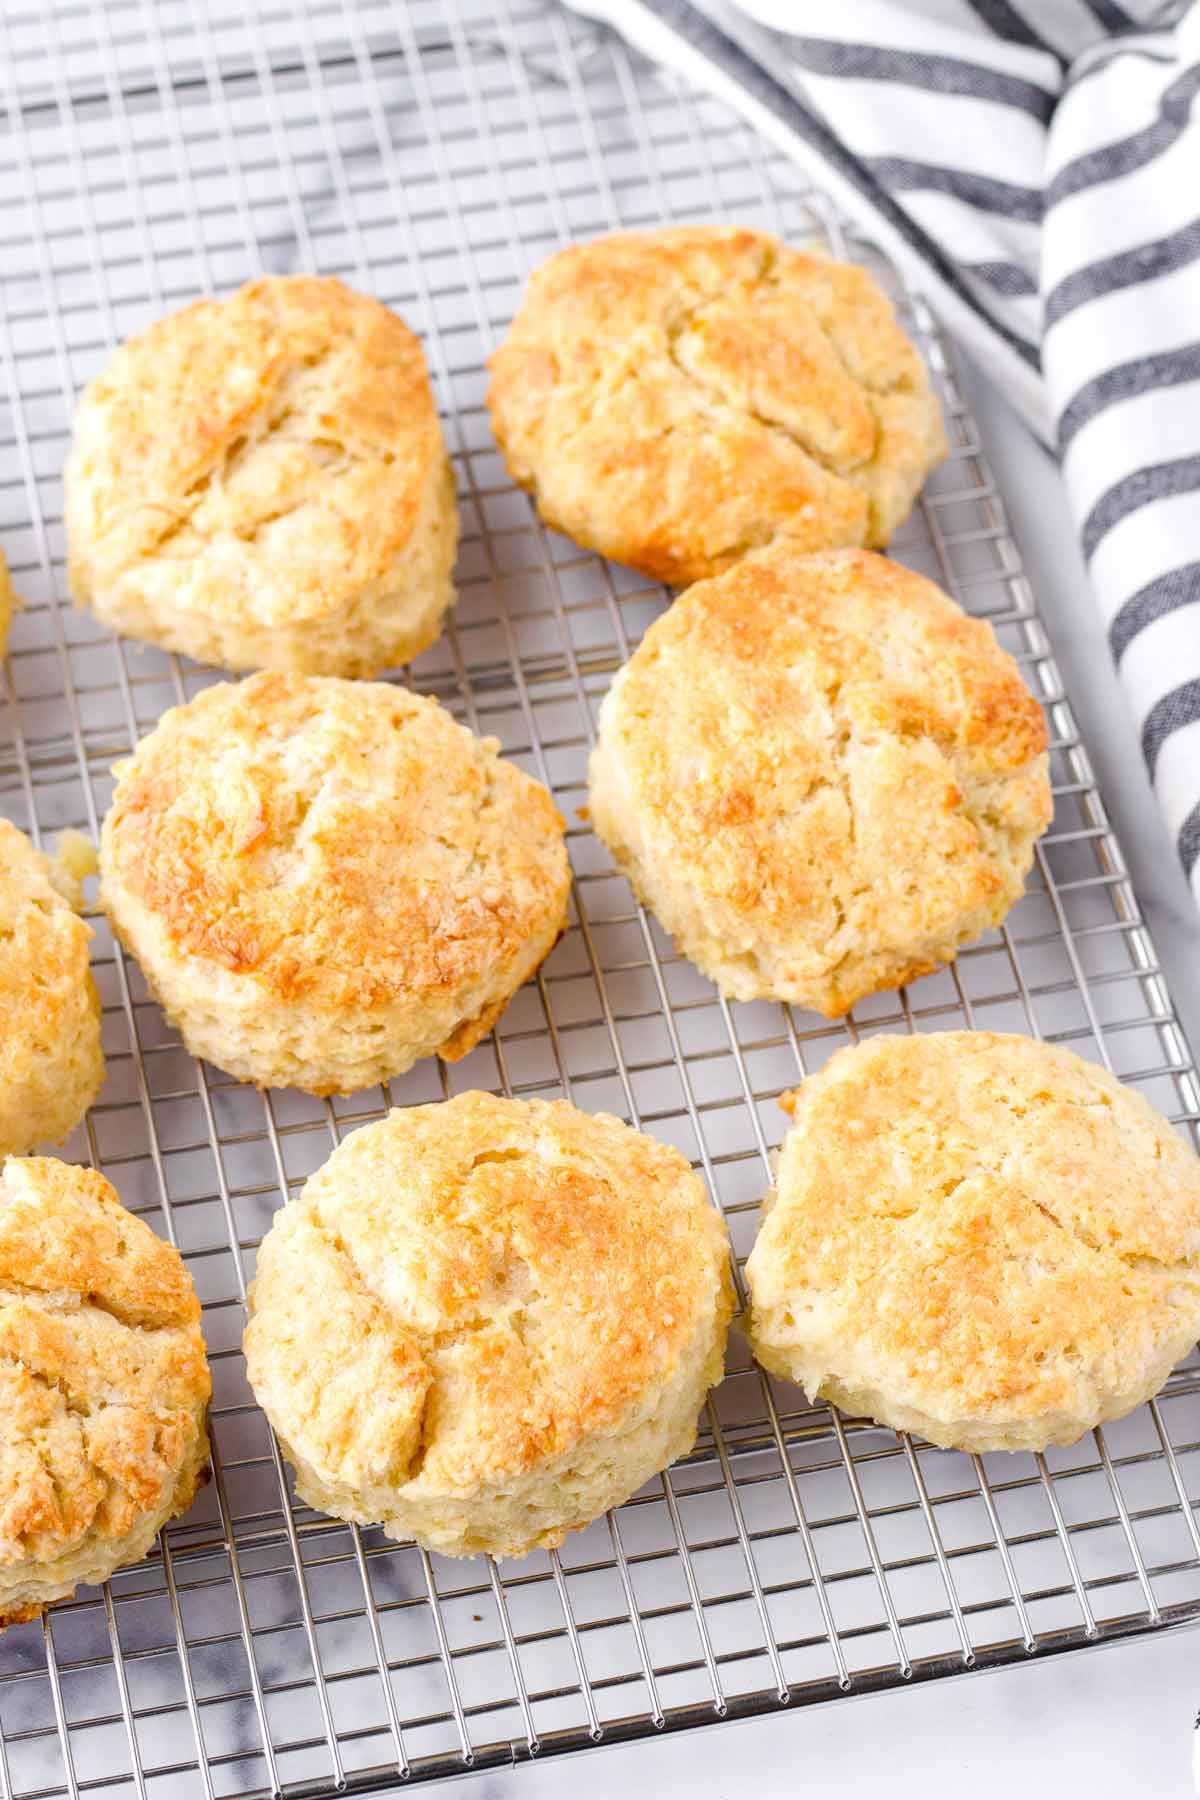 eight baked buttermilk biscuits on a cooling rack